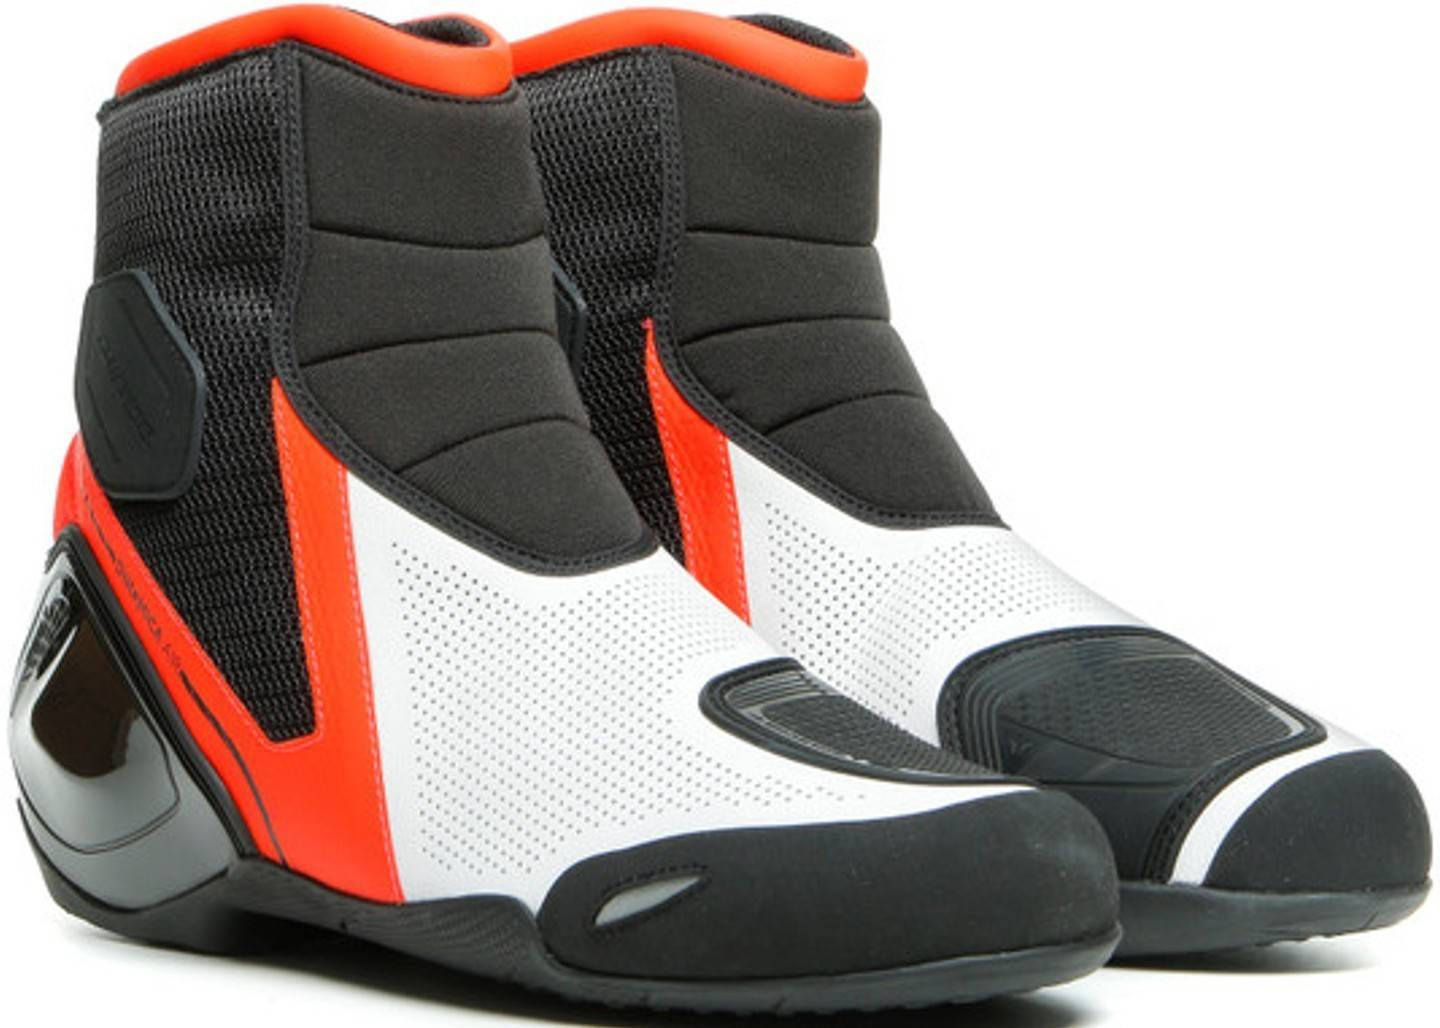 Dainese Dinamica Air Motorcycle Shoes  - Size: 44